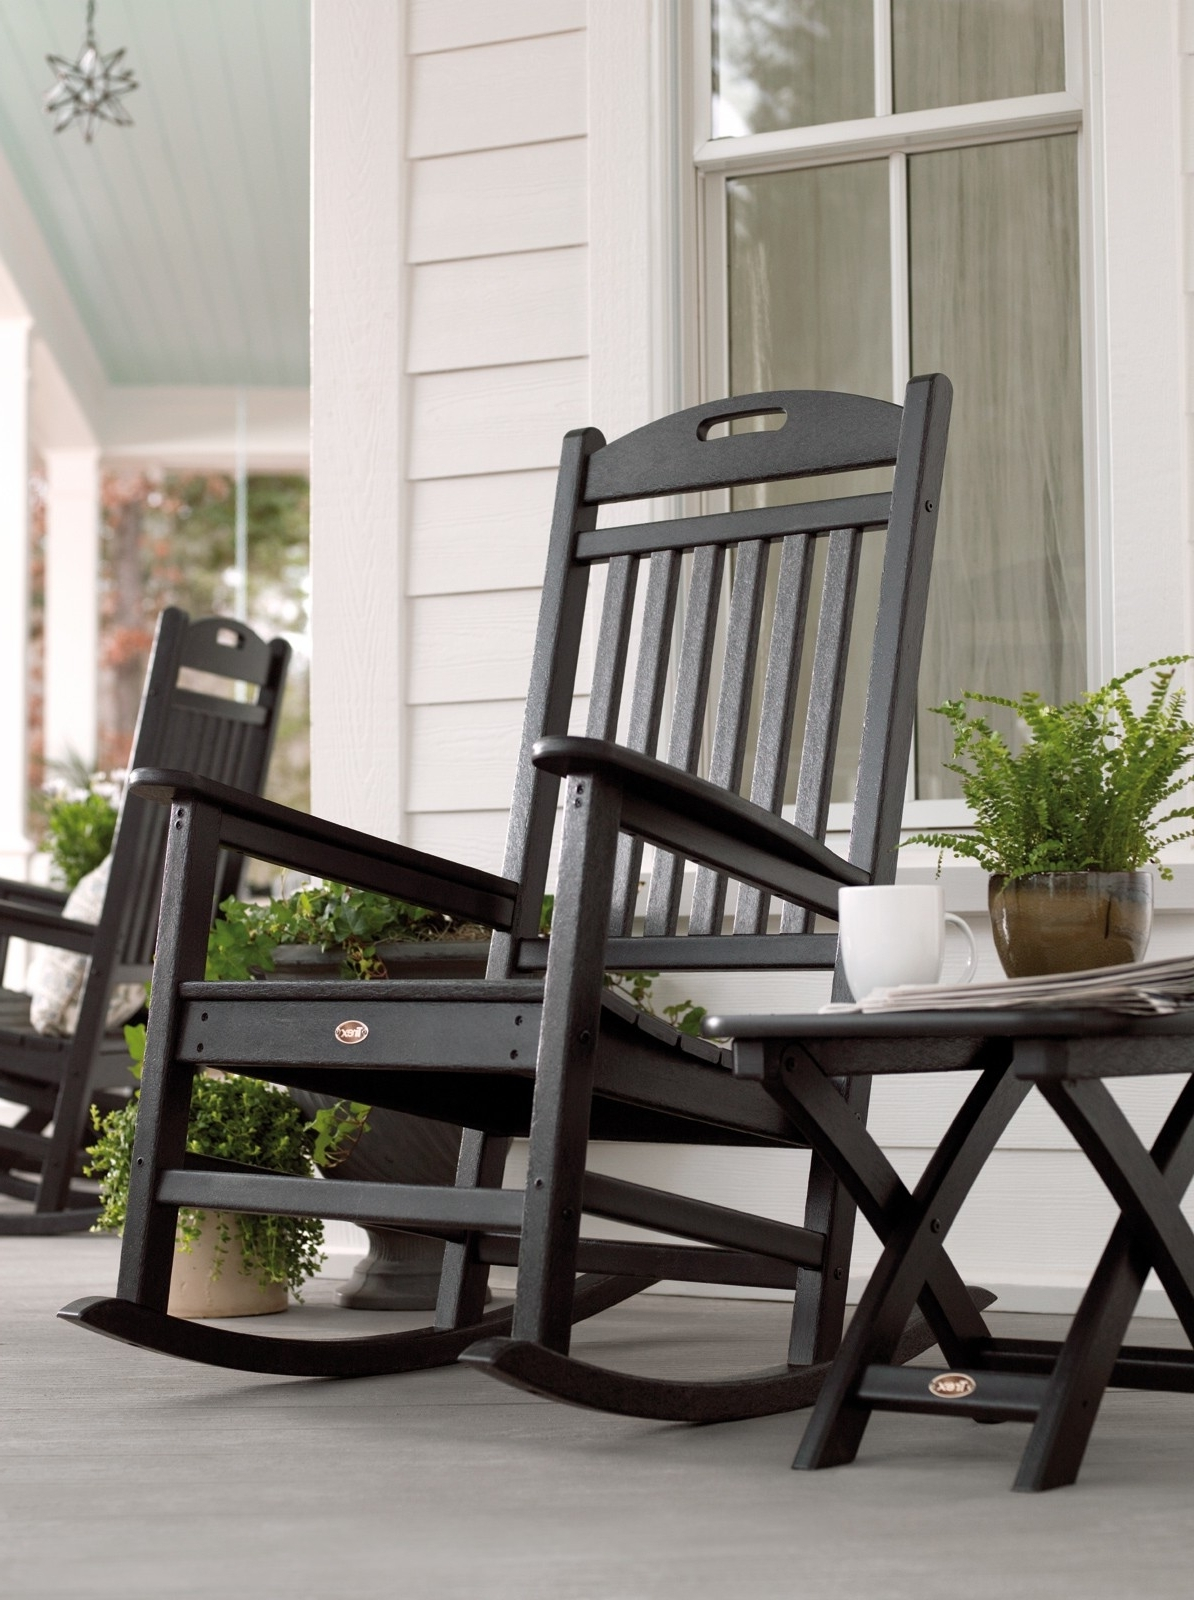 Rocking Chairs For Outdoors For Most Up To Date Yacht Club Rocking Chair (View 2 of 15)